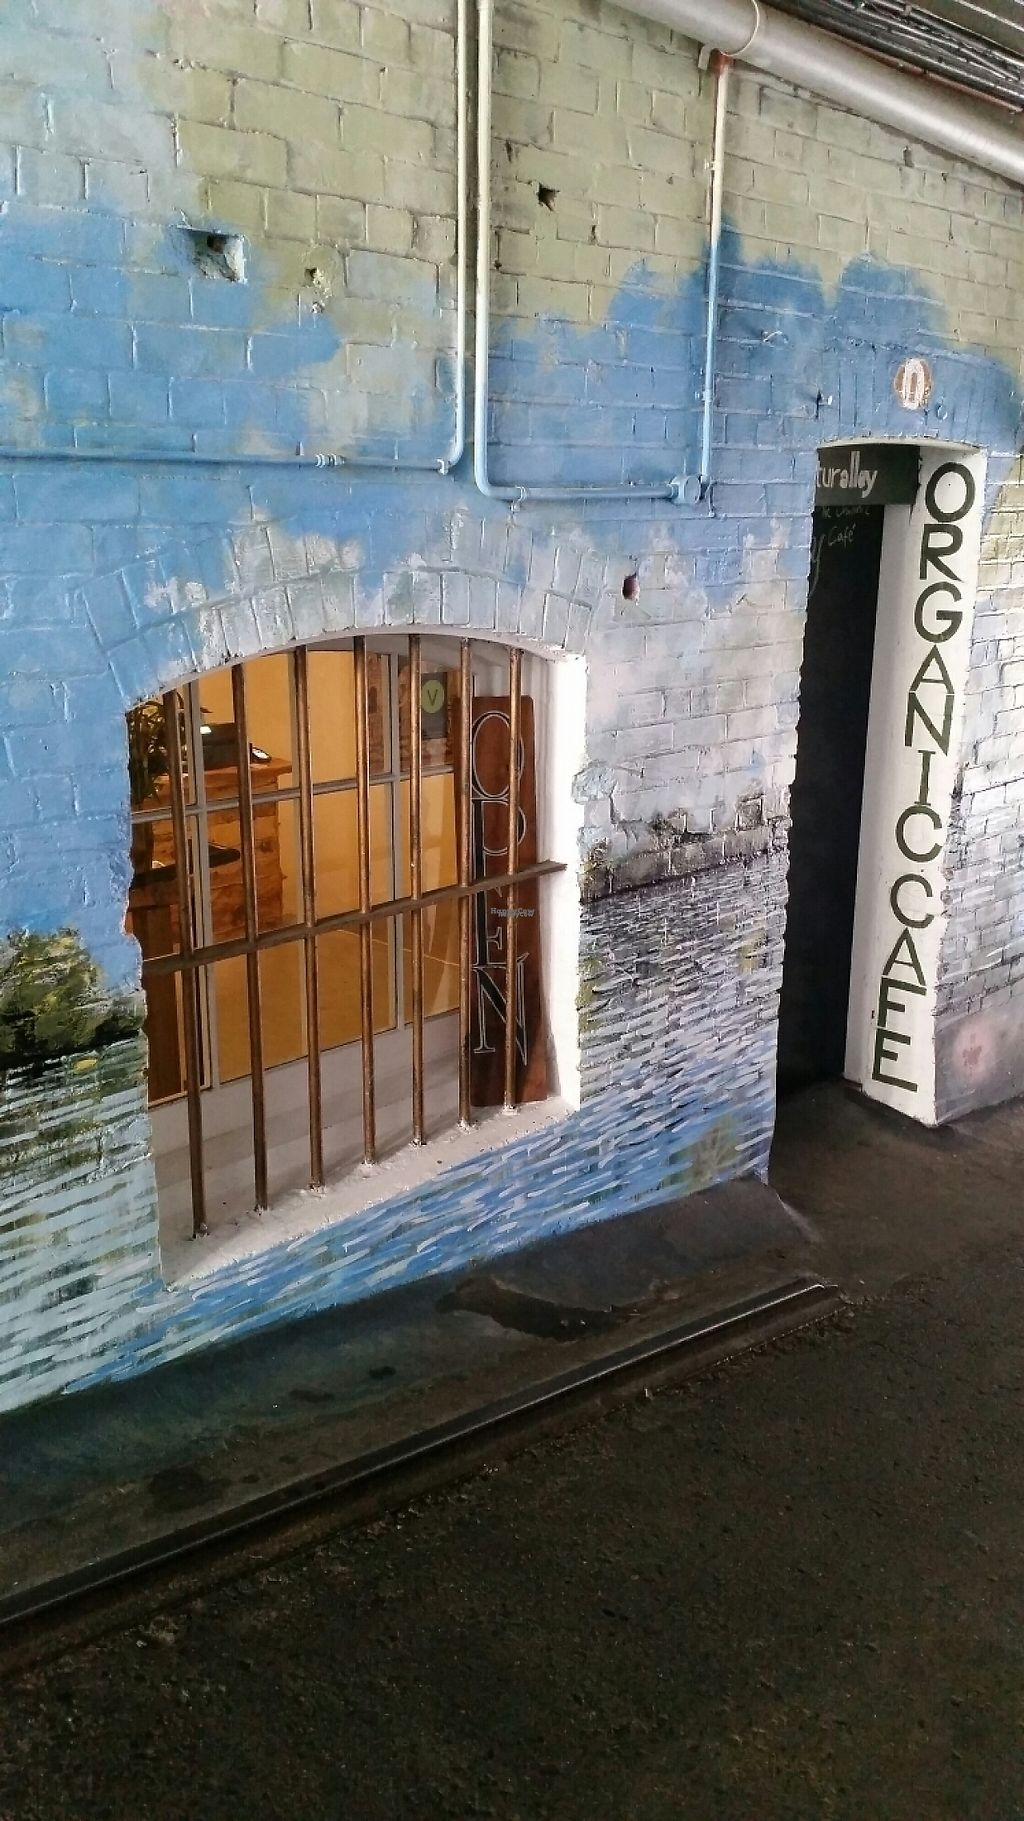 "Photo of CLOSED: Naturalley Organic Cafe  by <a href=""/members/profile/AndyTheVWDude"">AndyTheVWDude</a> <br/>Cafe entrance down the alley <br/> November 9, 2016  - <a href='/contact/abuse/image/69280/187606'>Report</a>"